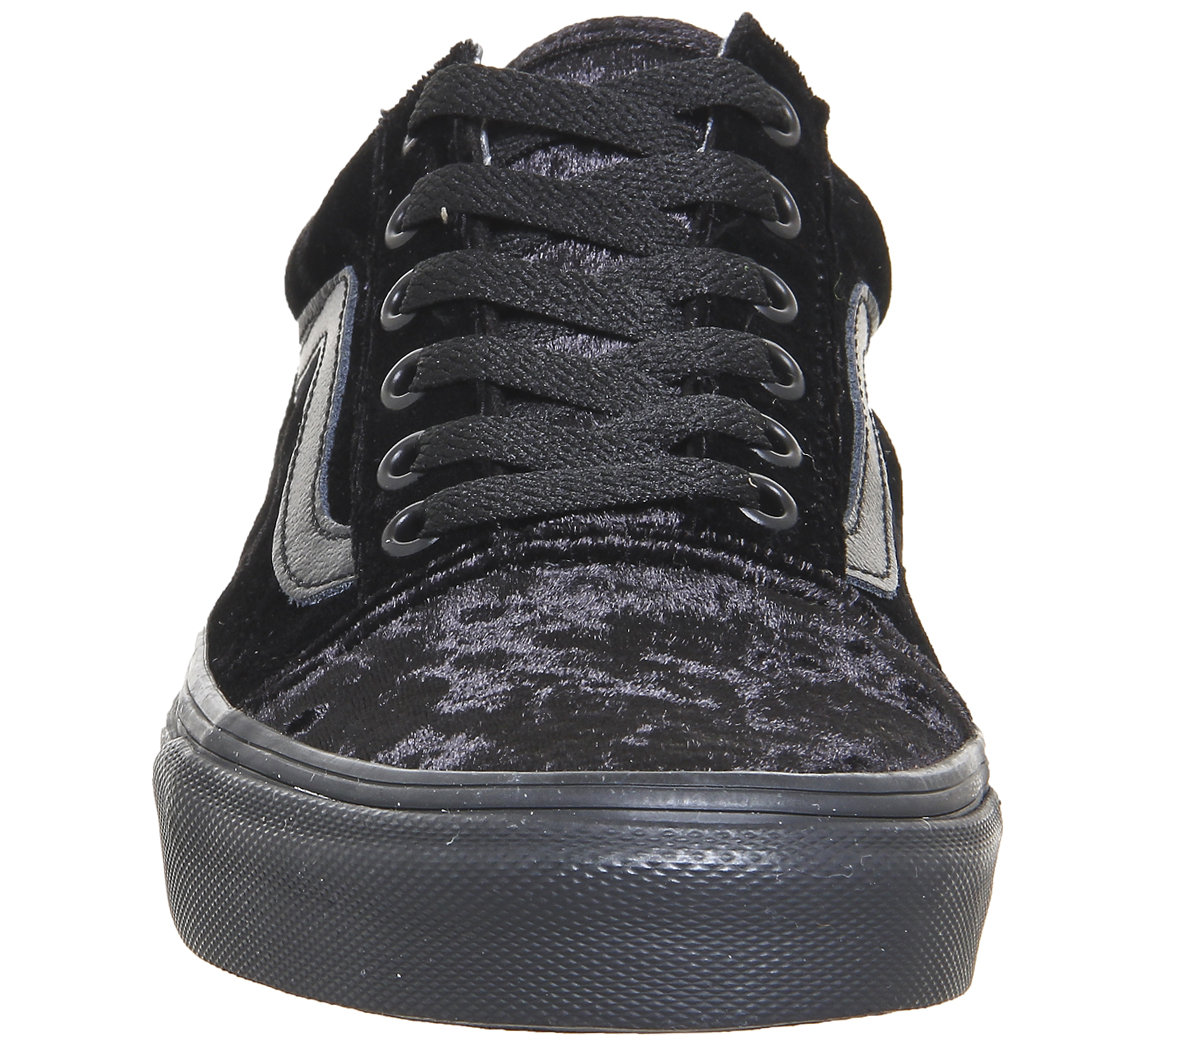 4bb789cdd56cd4 Sentinel Womens Vans Old Skool Trainers VELVET BLACK BLACK Trainers Shoes